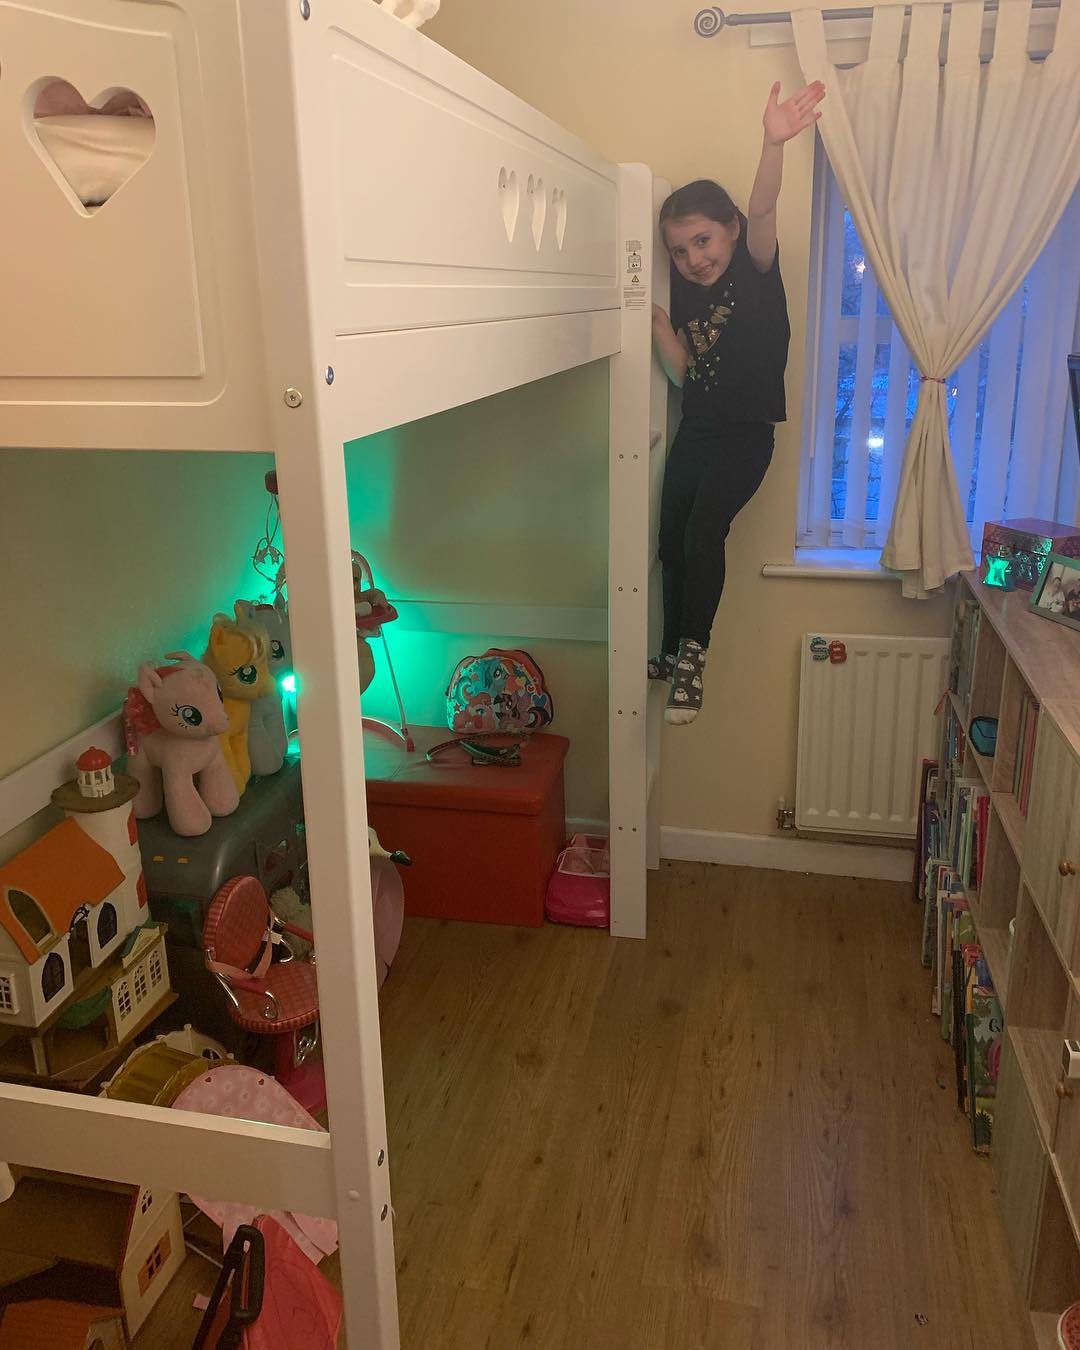 boxroom space saving ideas - 6 year old Sydney stood on the ladder of her new cabin bed, looking very excited.